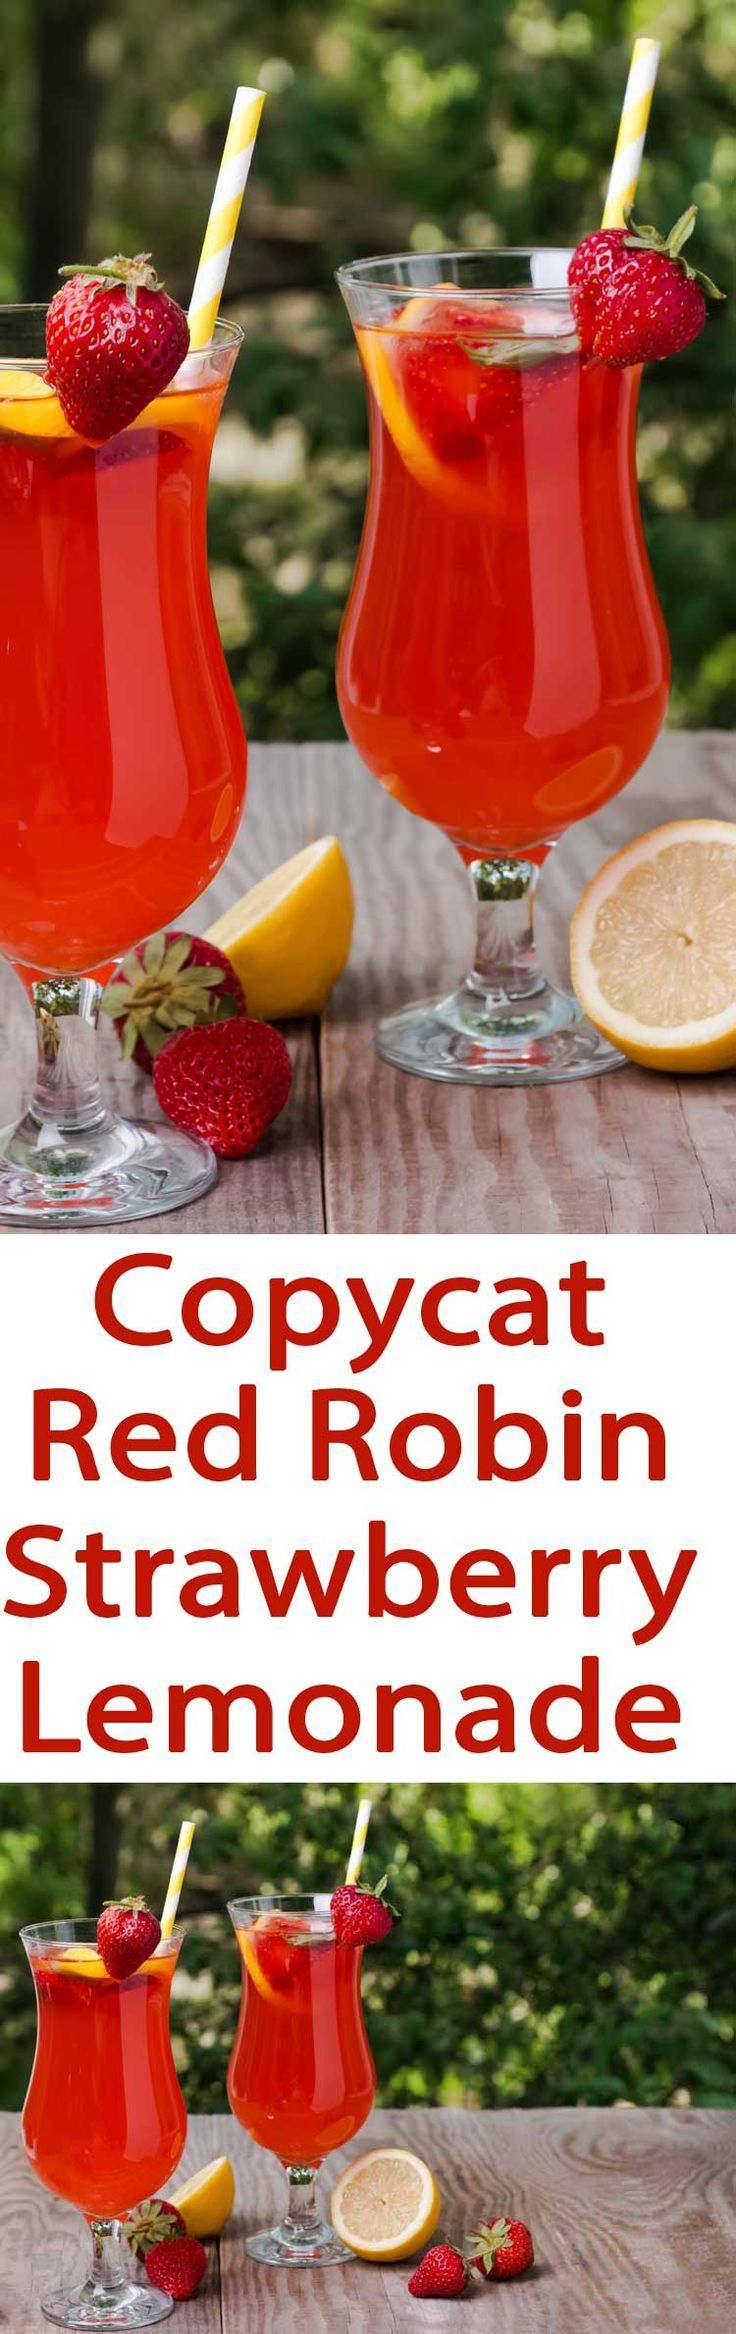 Sweet and Tart Strawberry Lemonade just like Red Robin Strawberry Lemonade Love a good fruity drink recipe? Then this Strawberry Lemonade recipe is exactly what youre looking for. Summer fun is something youll want to take advantage of, and its best to